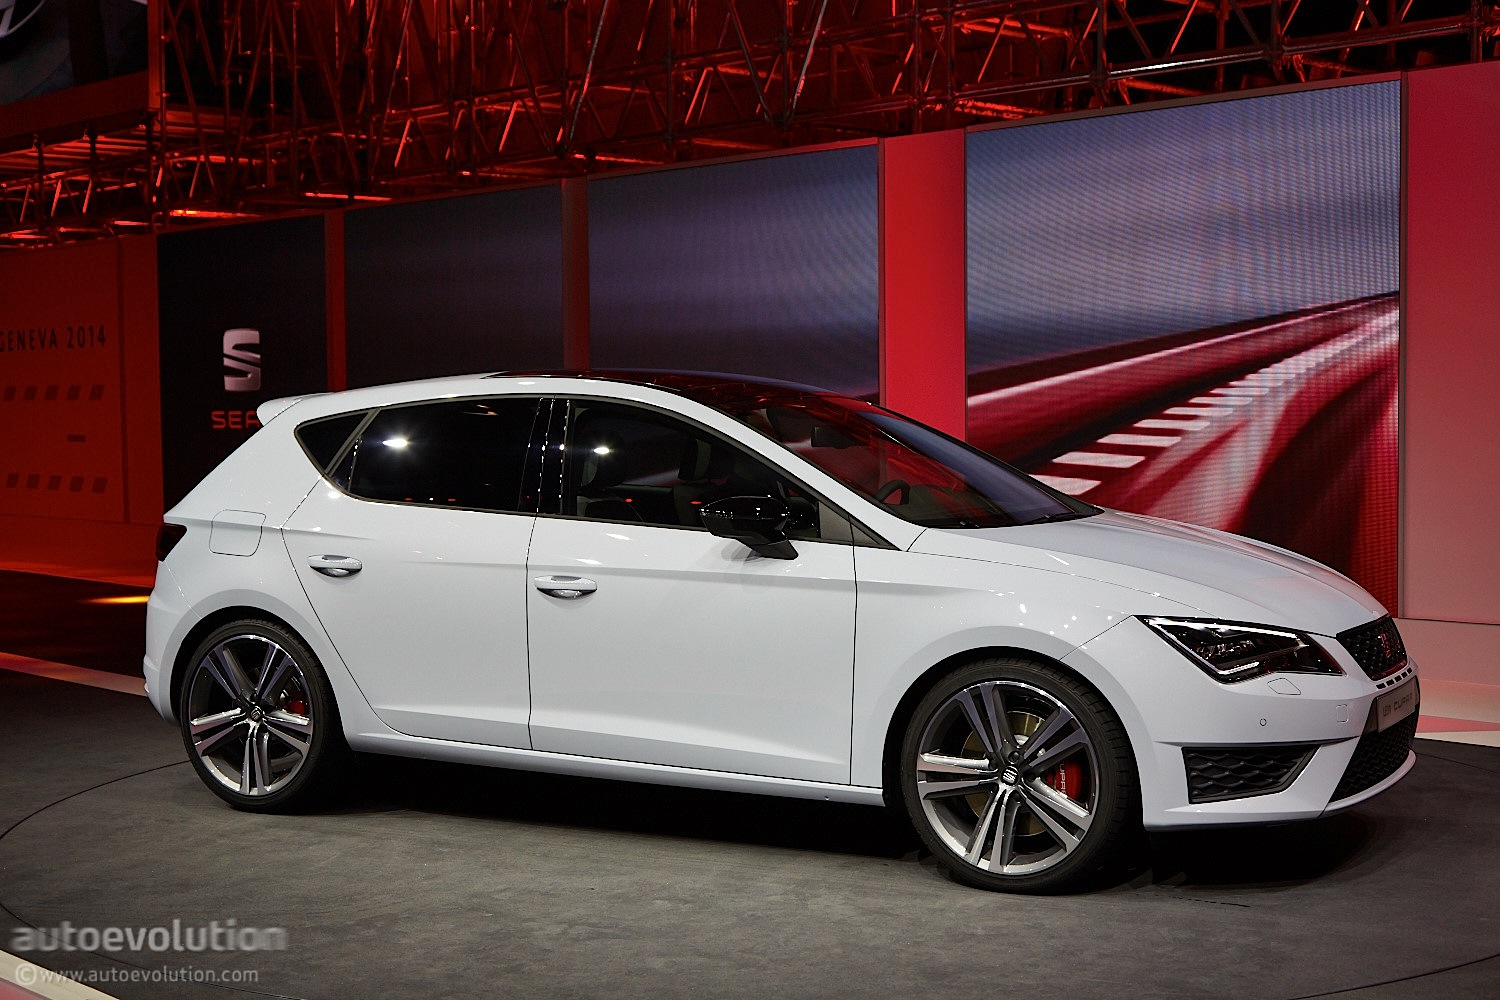 Seat Leon Cupra Is The Hottest Of The Hot Hatches Live Photos